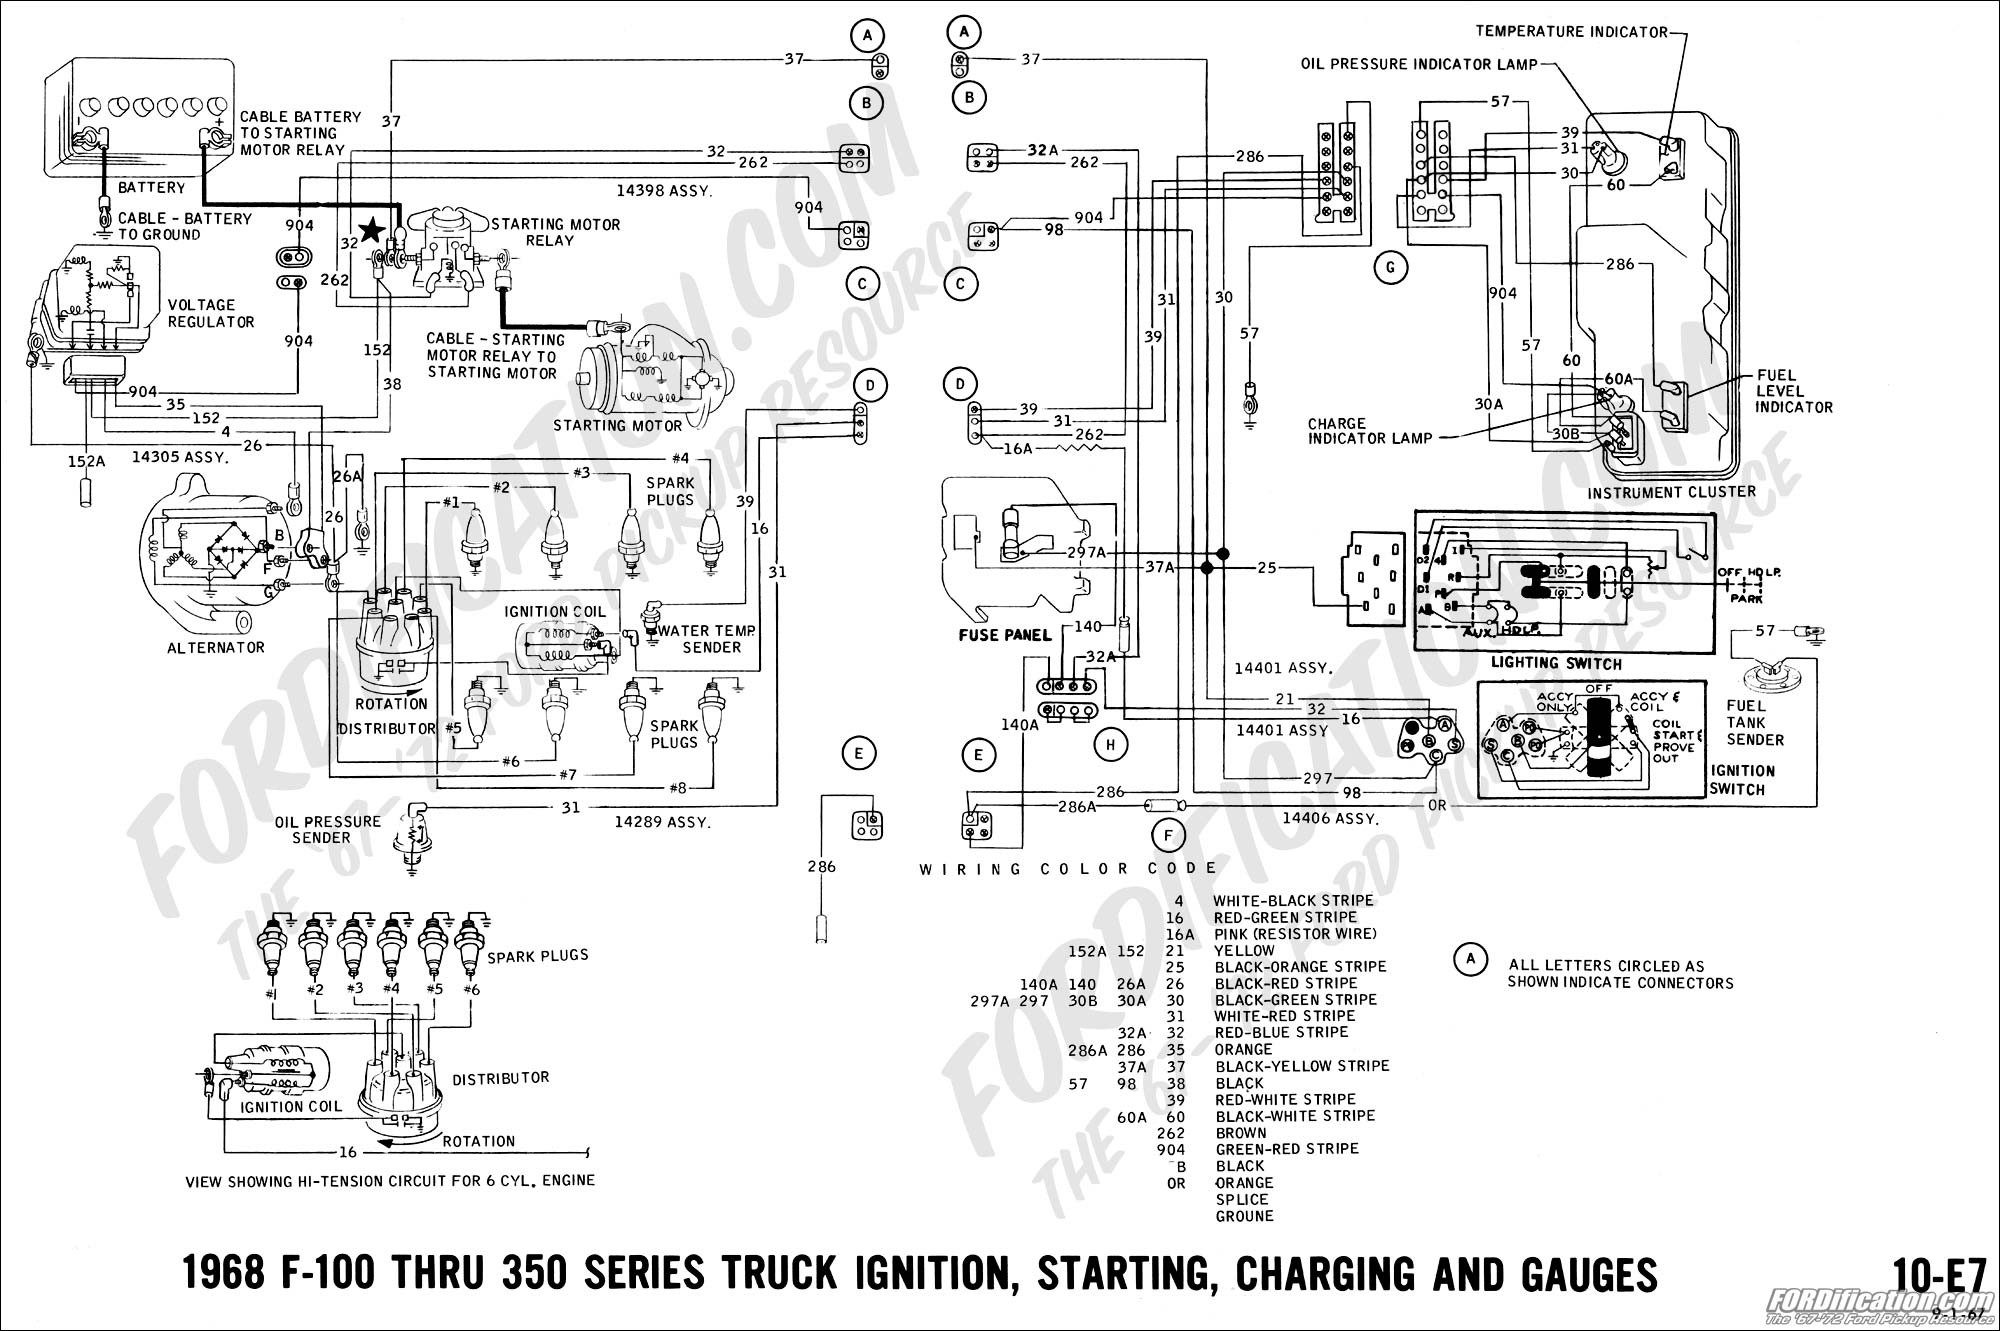 2001 ford Taurus Engine Diagram ford Mustang Wiper Motor Diagram Also  Wiring Diagram Meke Of 2001